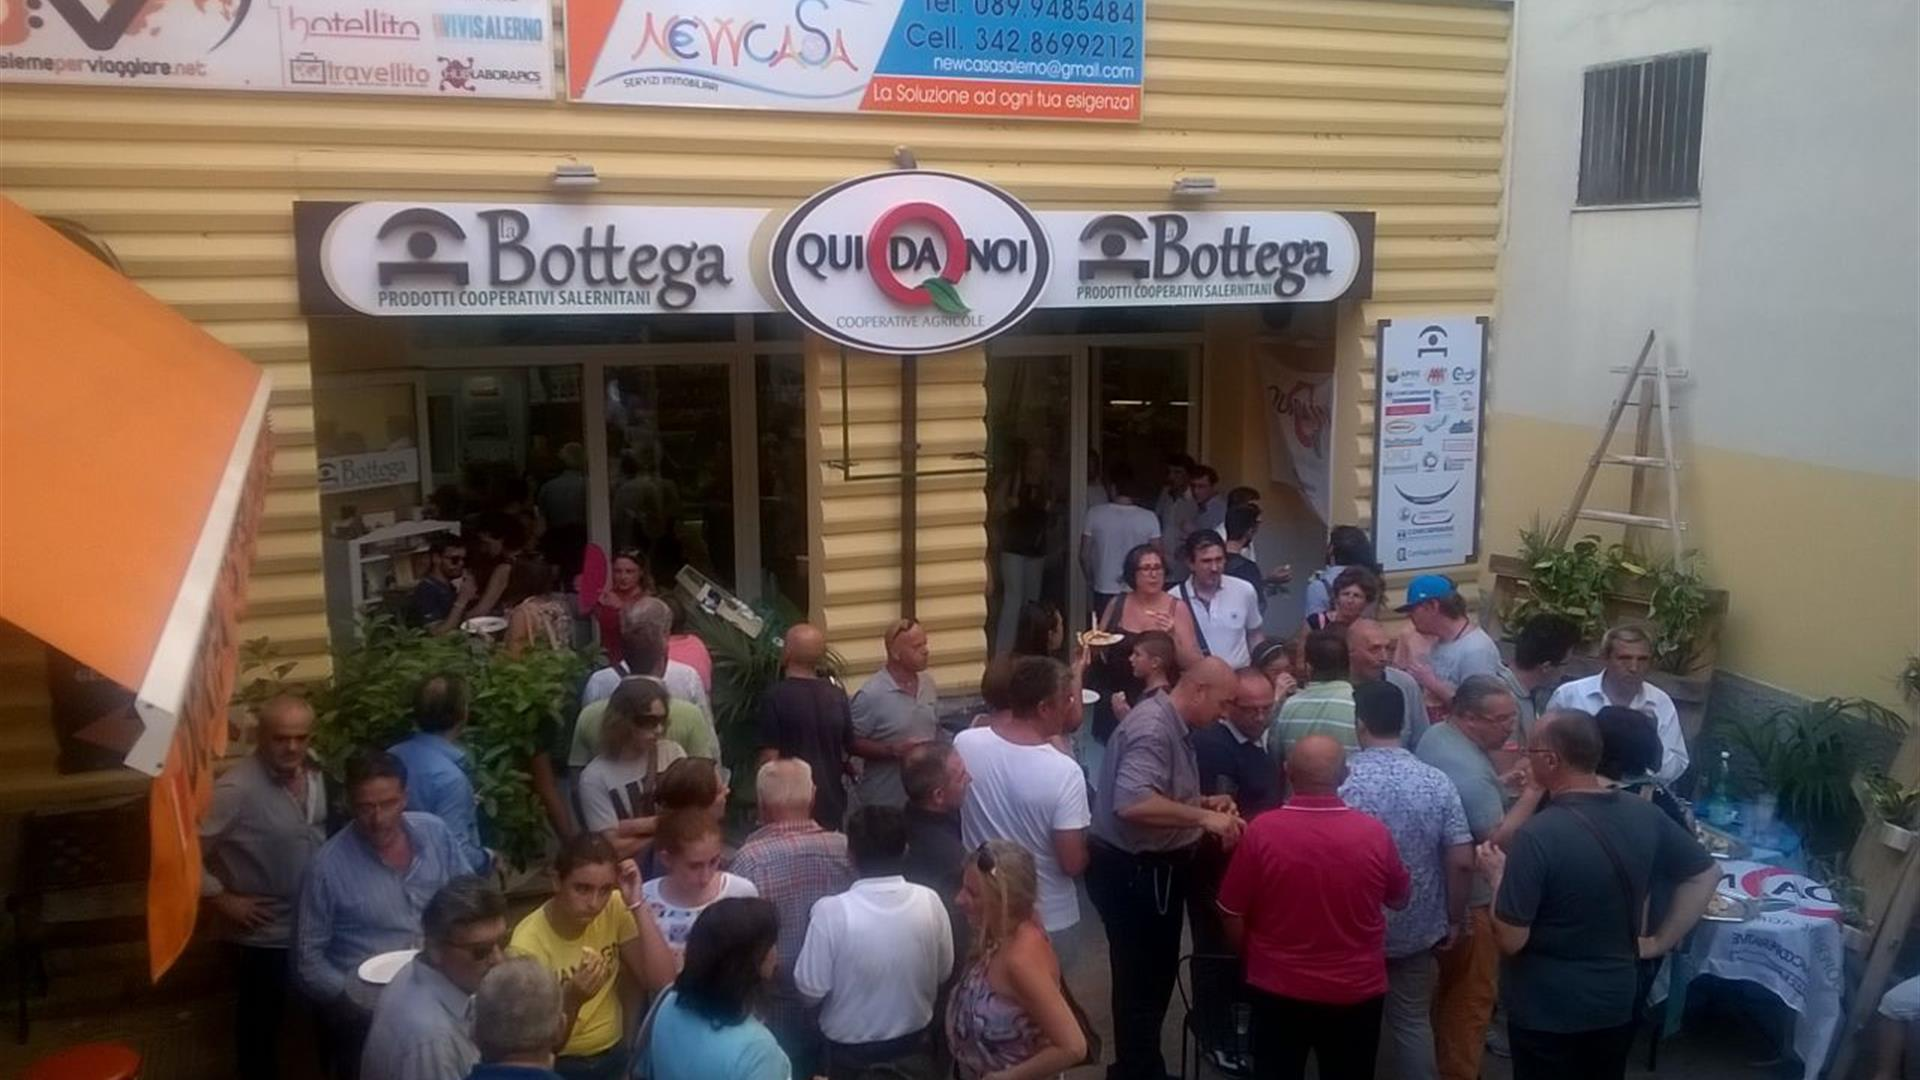 Bottega Coop A Salerno